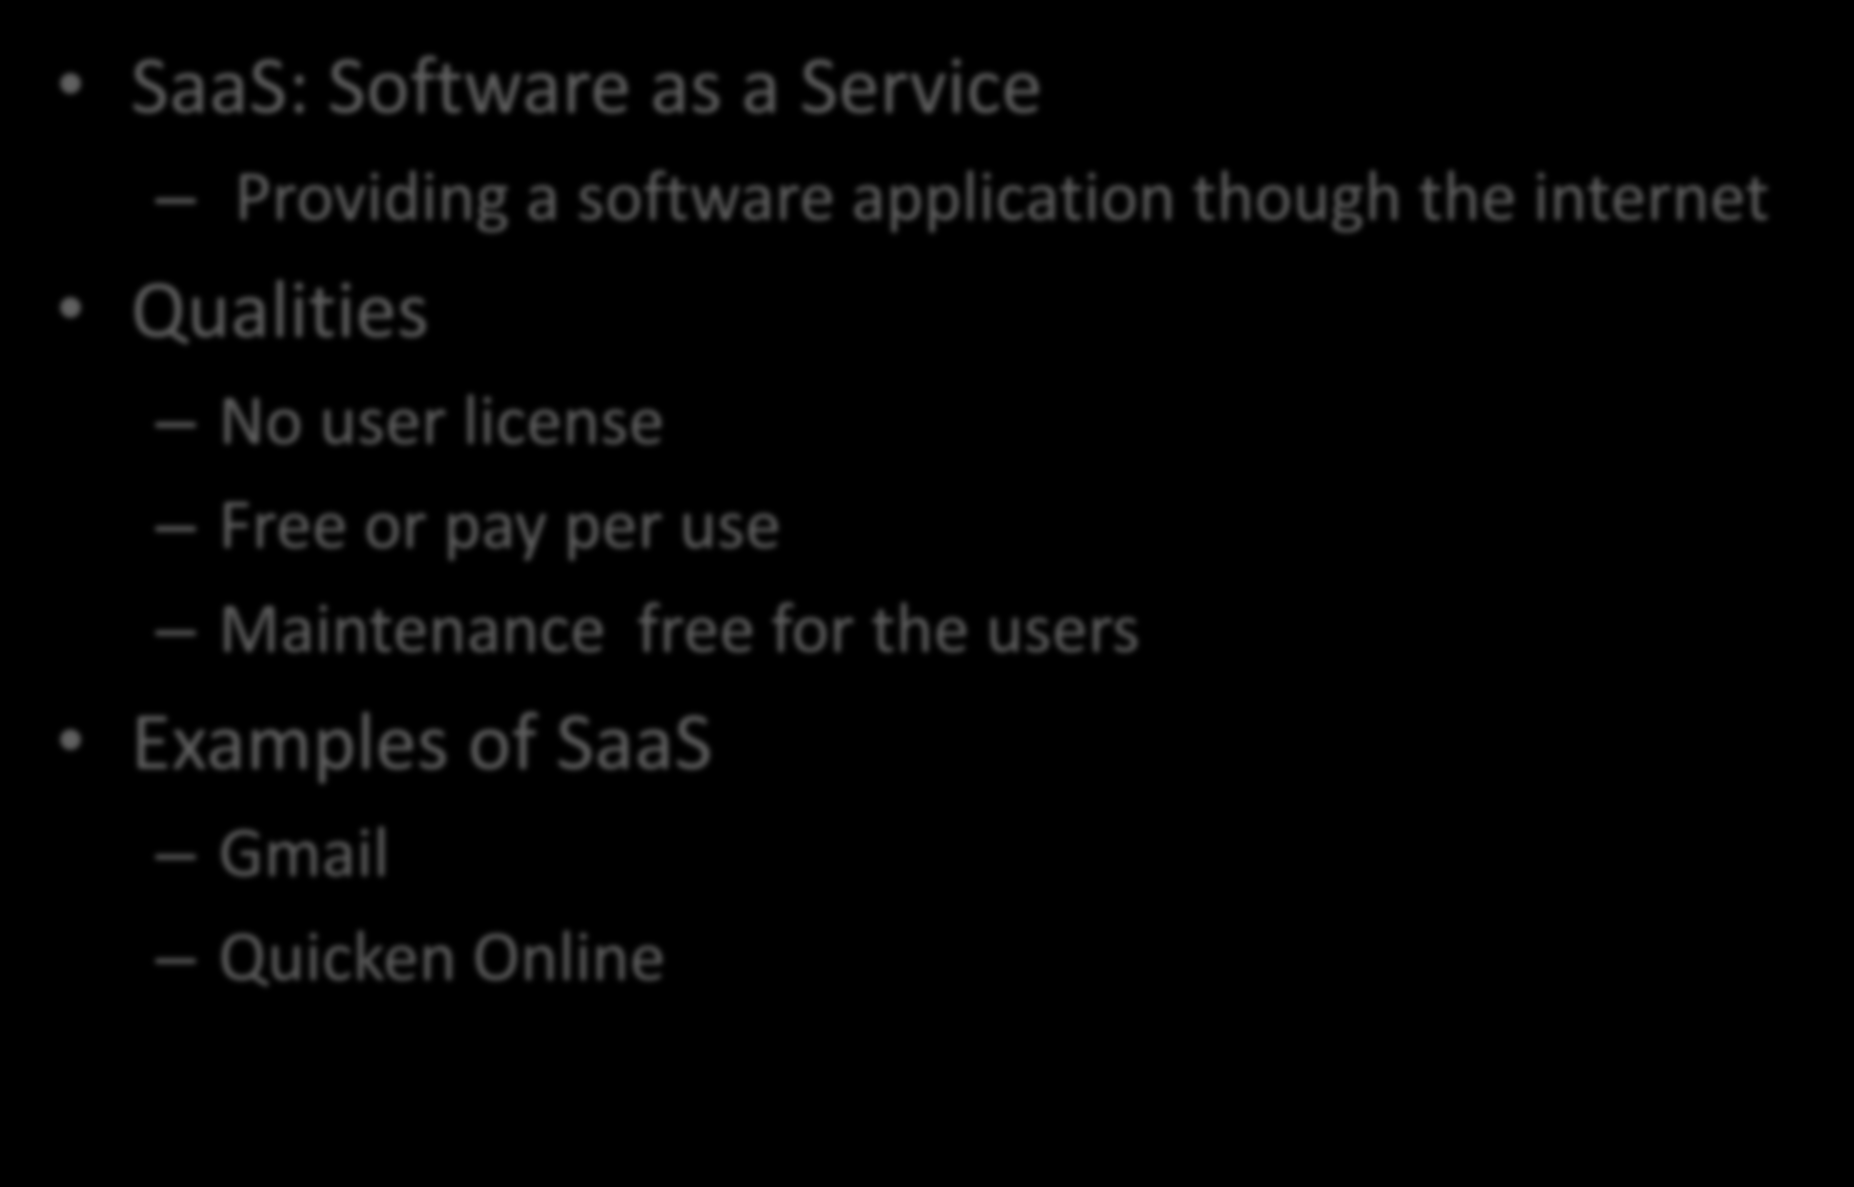 Types of Cloud Computing SaaS: Software as a Service Providing a software application though the internet